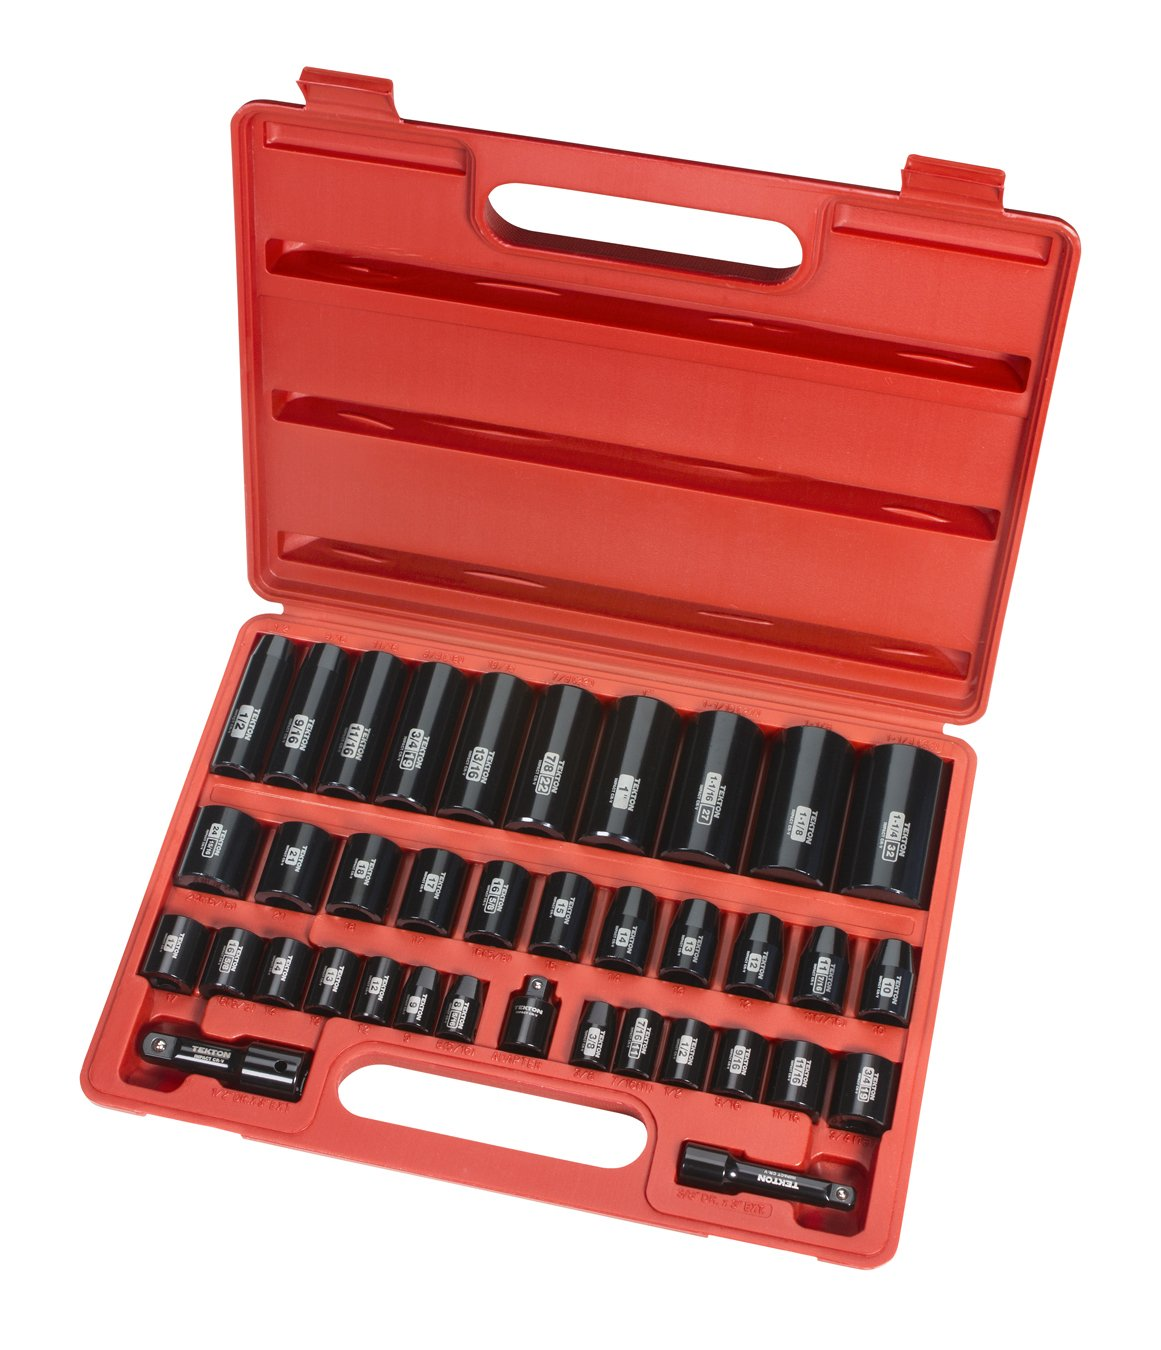 TEKTON 3/8-Inch and 1/2-Inch Drive Impact Socket Set, Inch/Metric, Cr-V, 6-Point, 3/8-Inch - 1-1/4-Inch, 8 mm - 32 mm, 38-Piece | 4888 by TEKTON